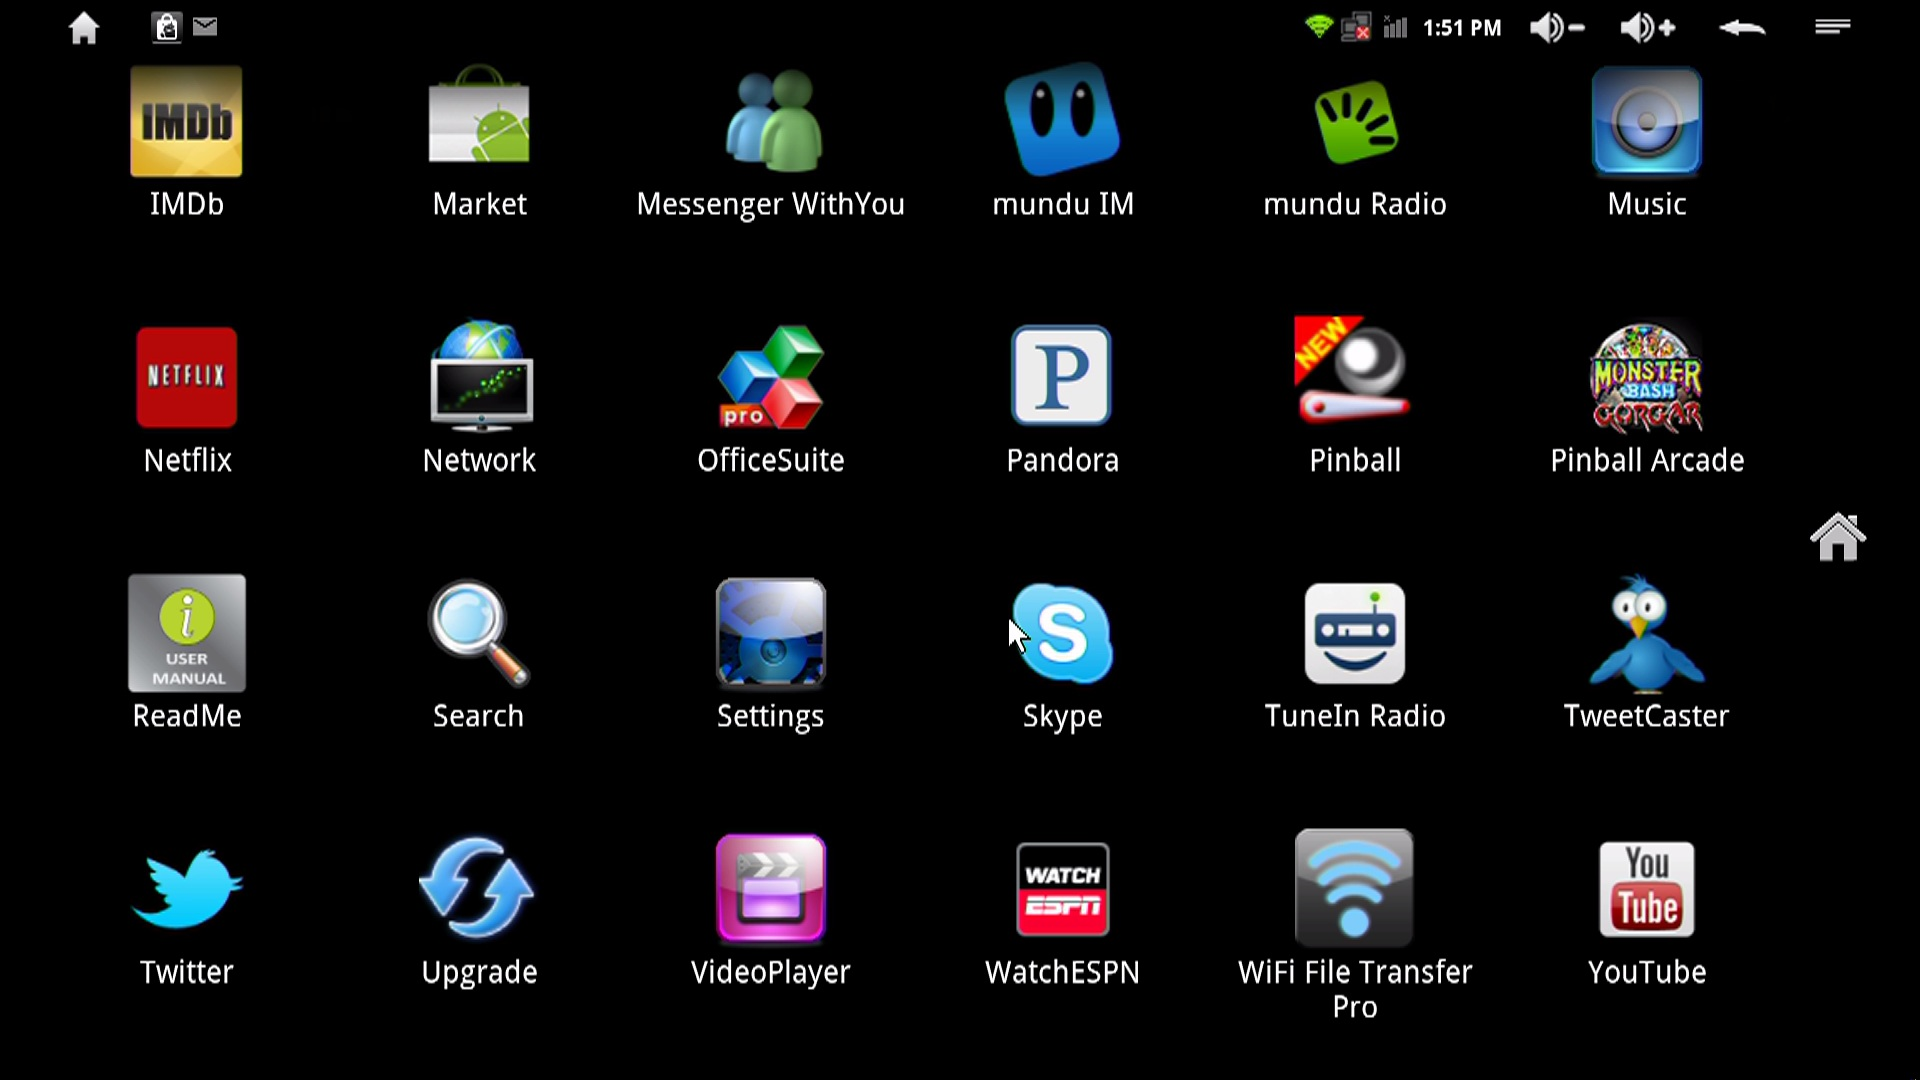 apps 1 desktop wallpaper 1200x814 36 34 kb jpg 51 ndroid apps 3 1920x1080